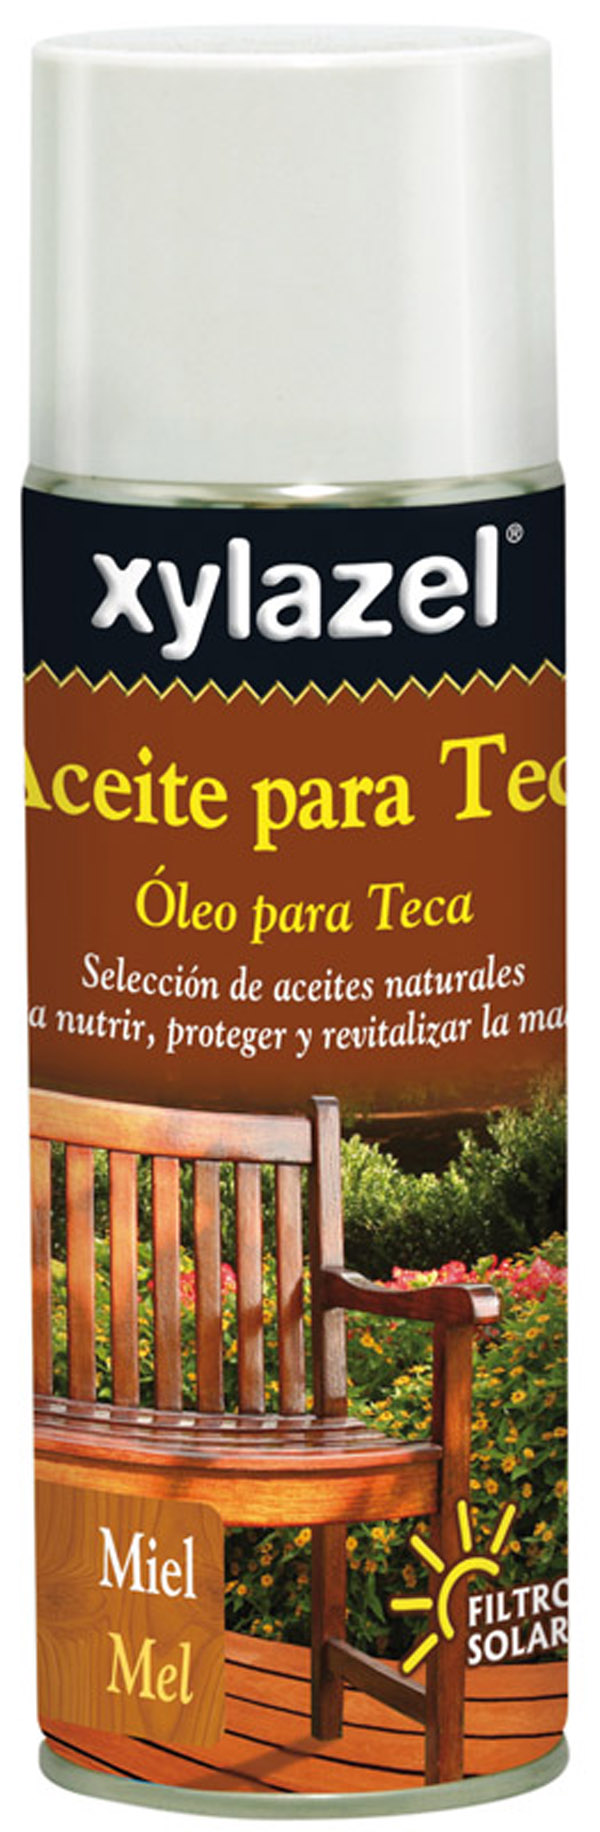 CZ 50001221 Aceite para teca spray miel XYLAZEL 400ml 630333